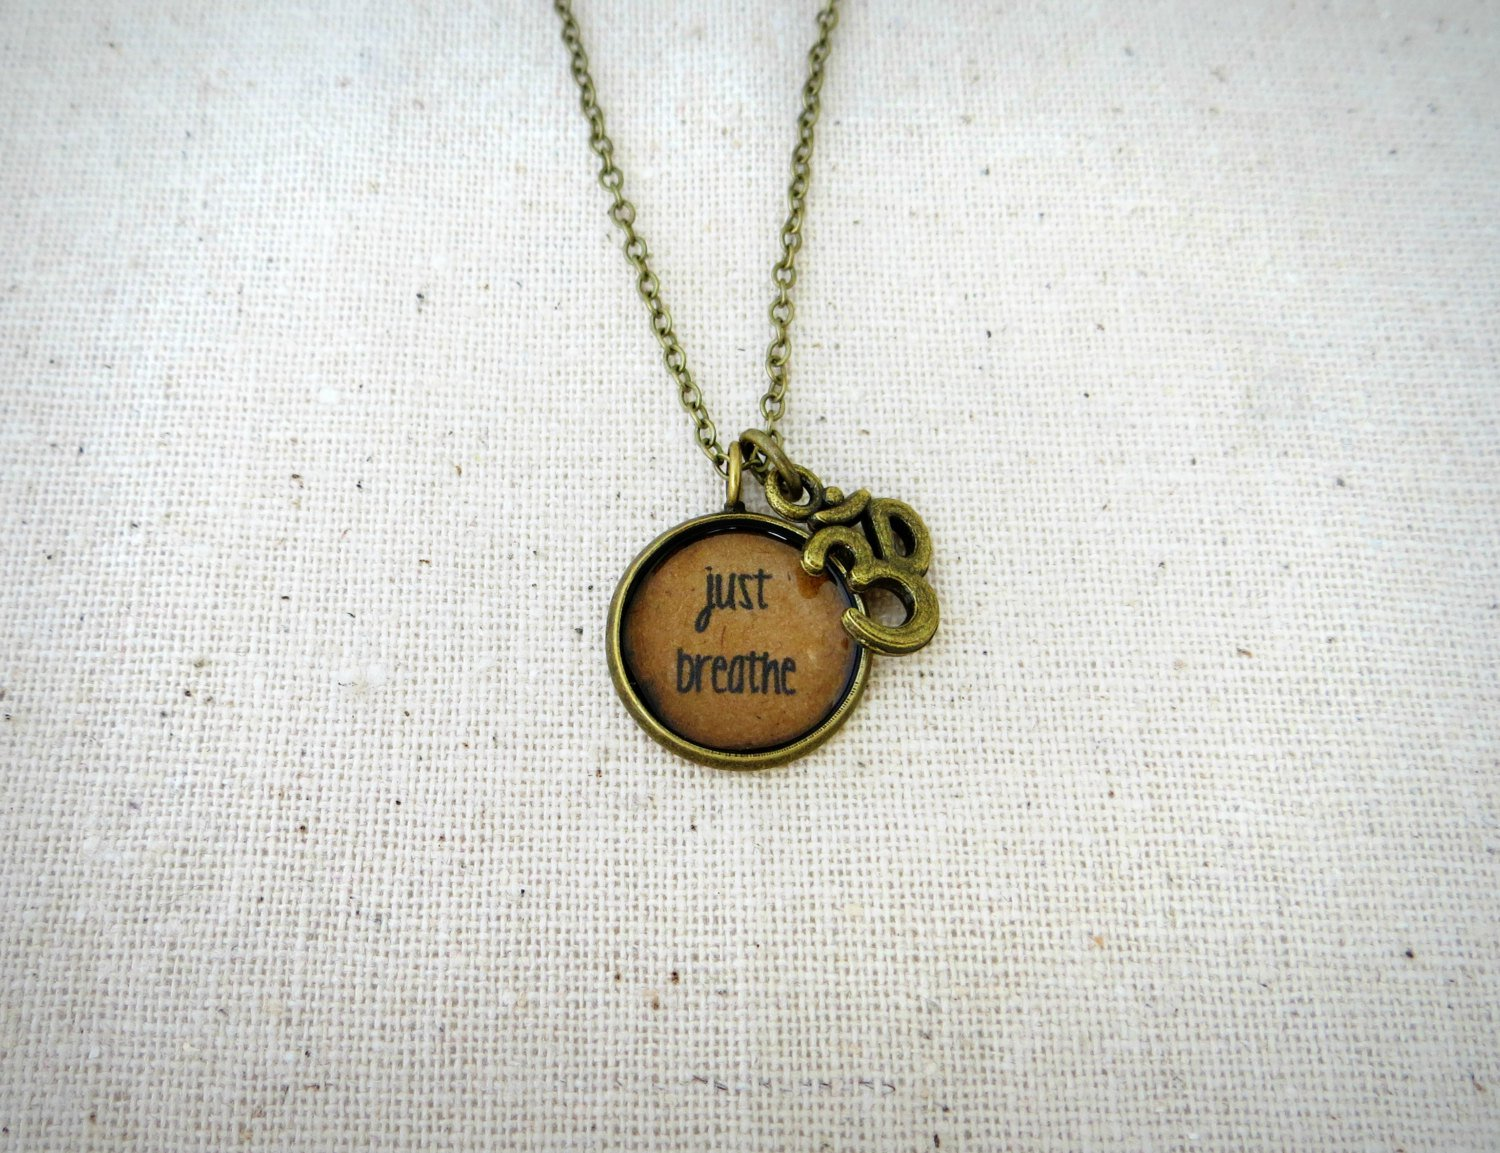 Just Breathe Inspirational Quote Pendant Necklace With Ohm Charm (Brass, 18 inches)